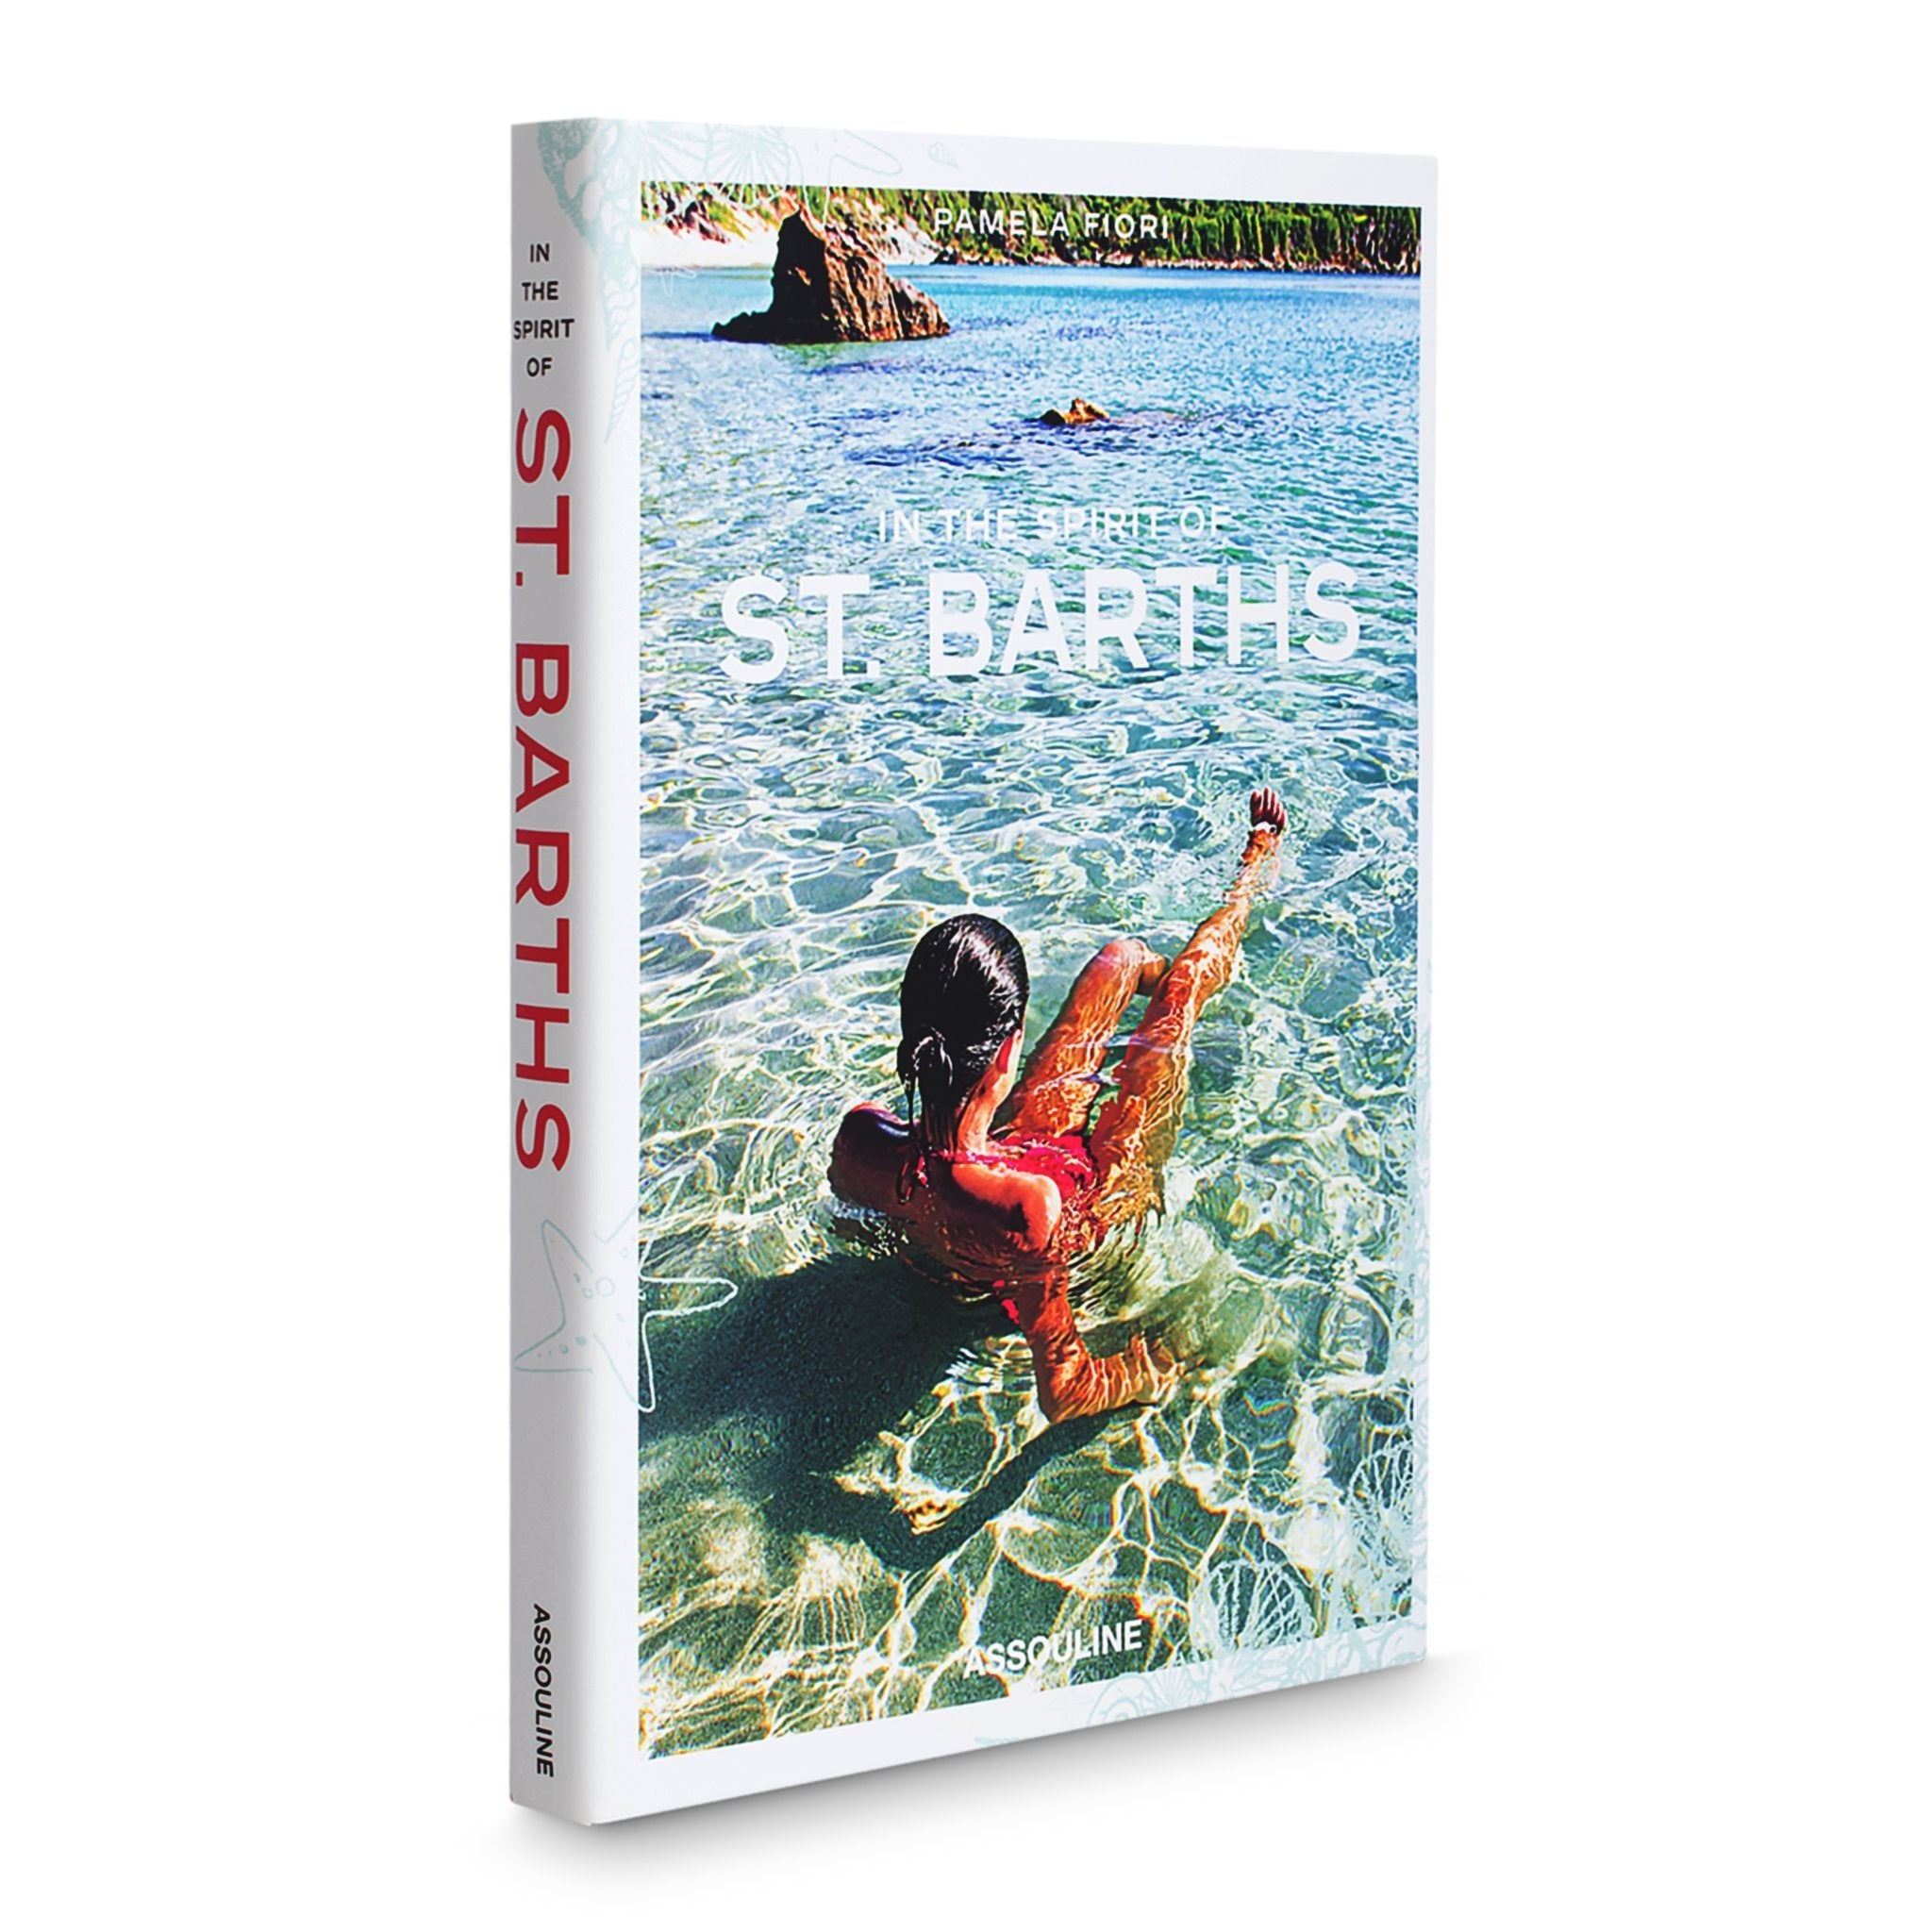 In the Spirit of St. Barths - Assouline